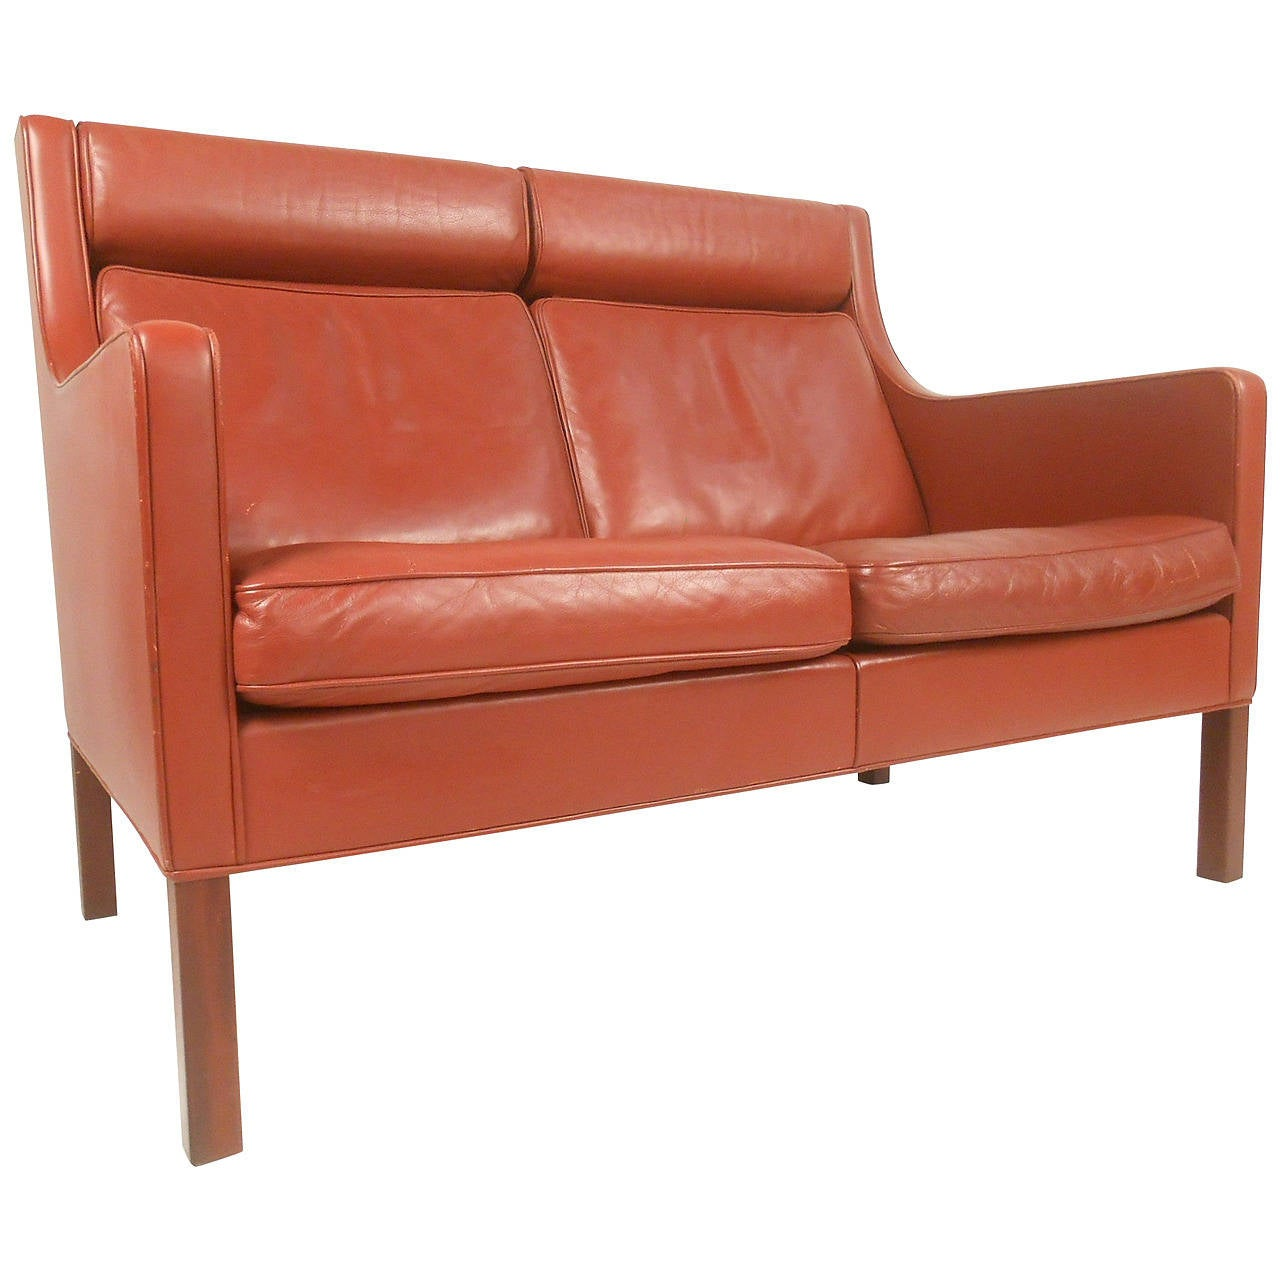 Borge Mogensen Leather Loveseat Sofa